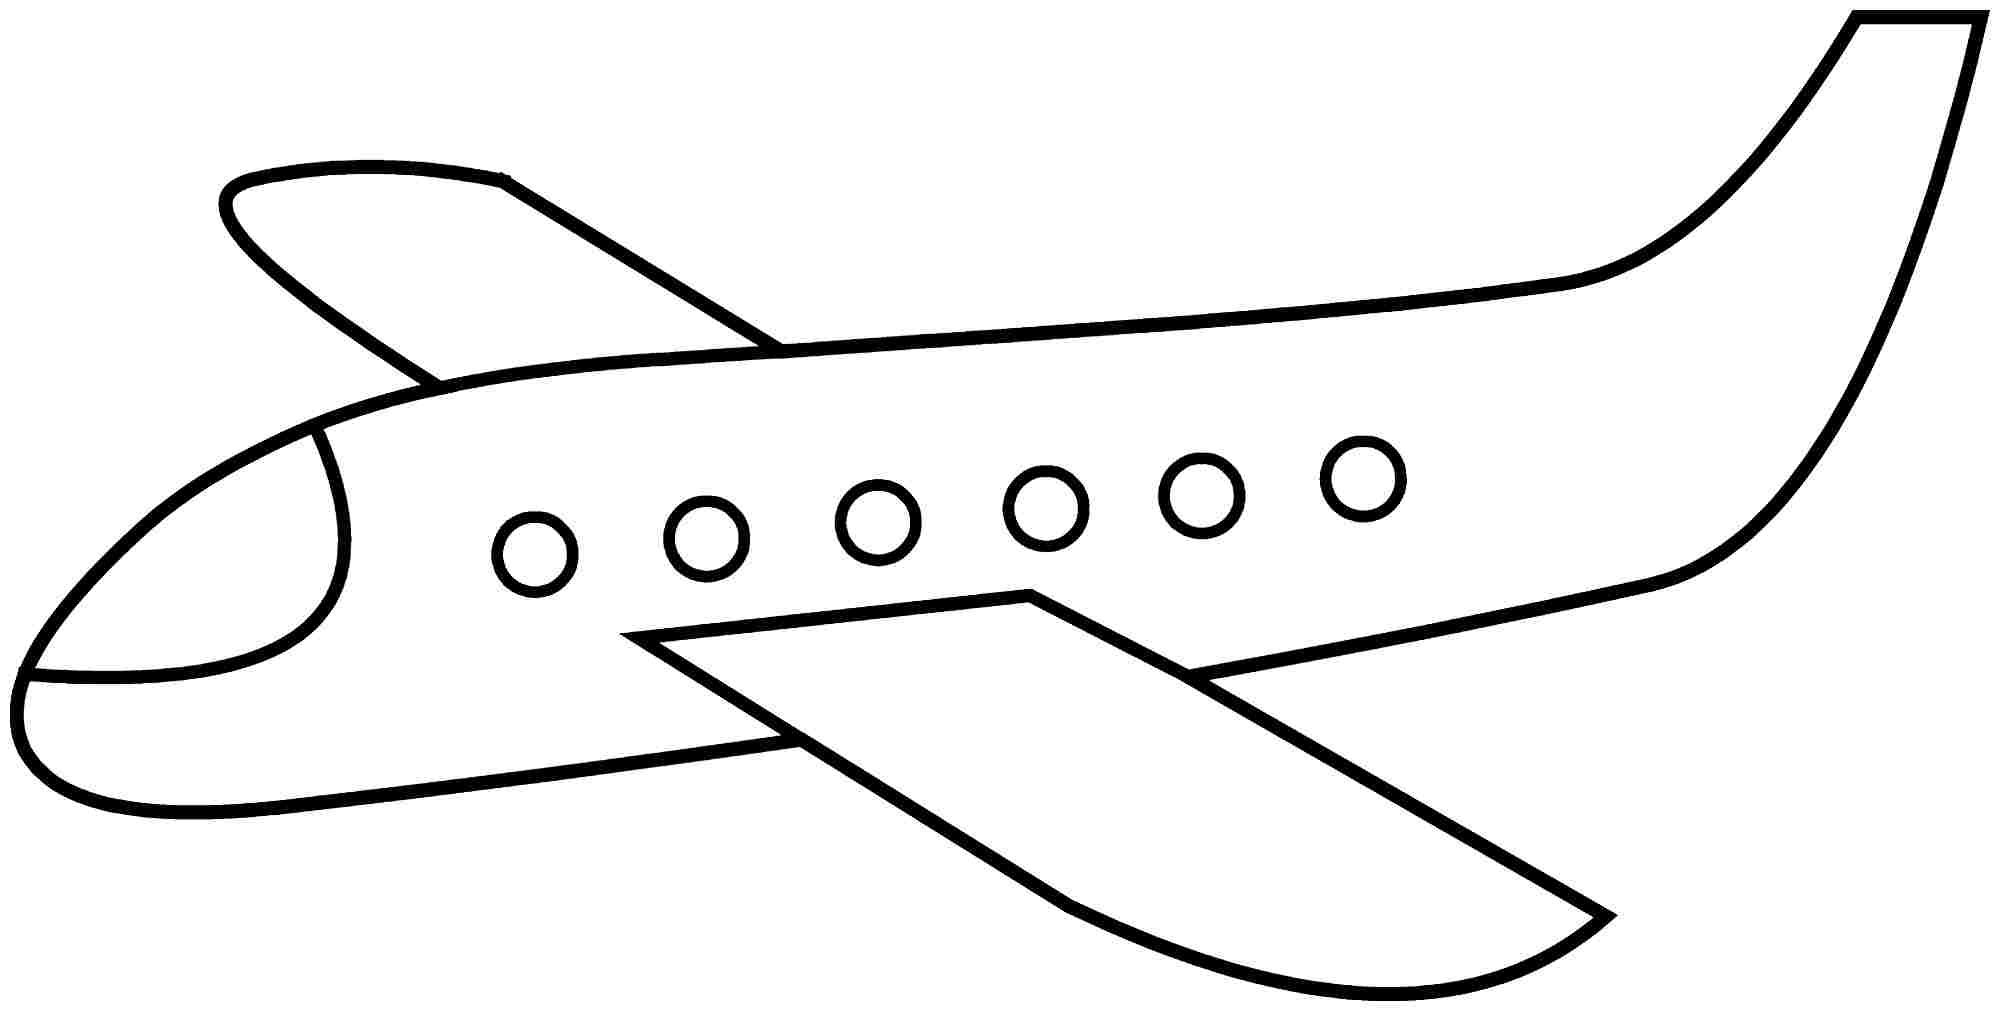 plane coloring pages simple airplane coloring pages   Google Search | Face Paint  plane coloring pages